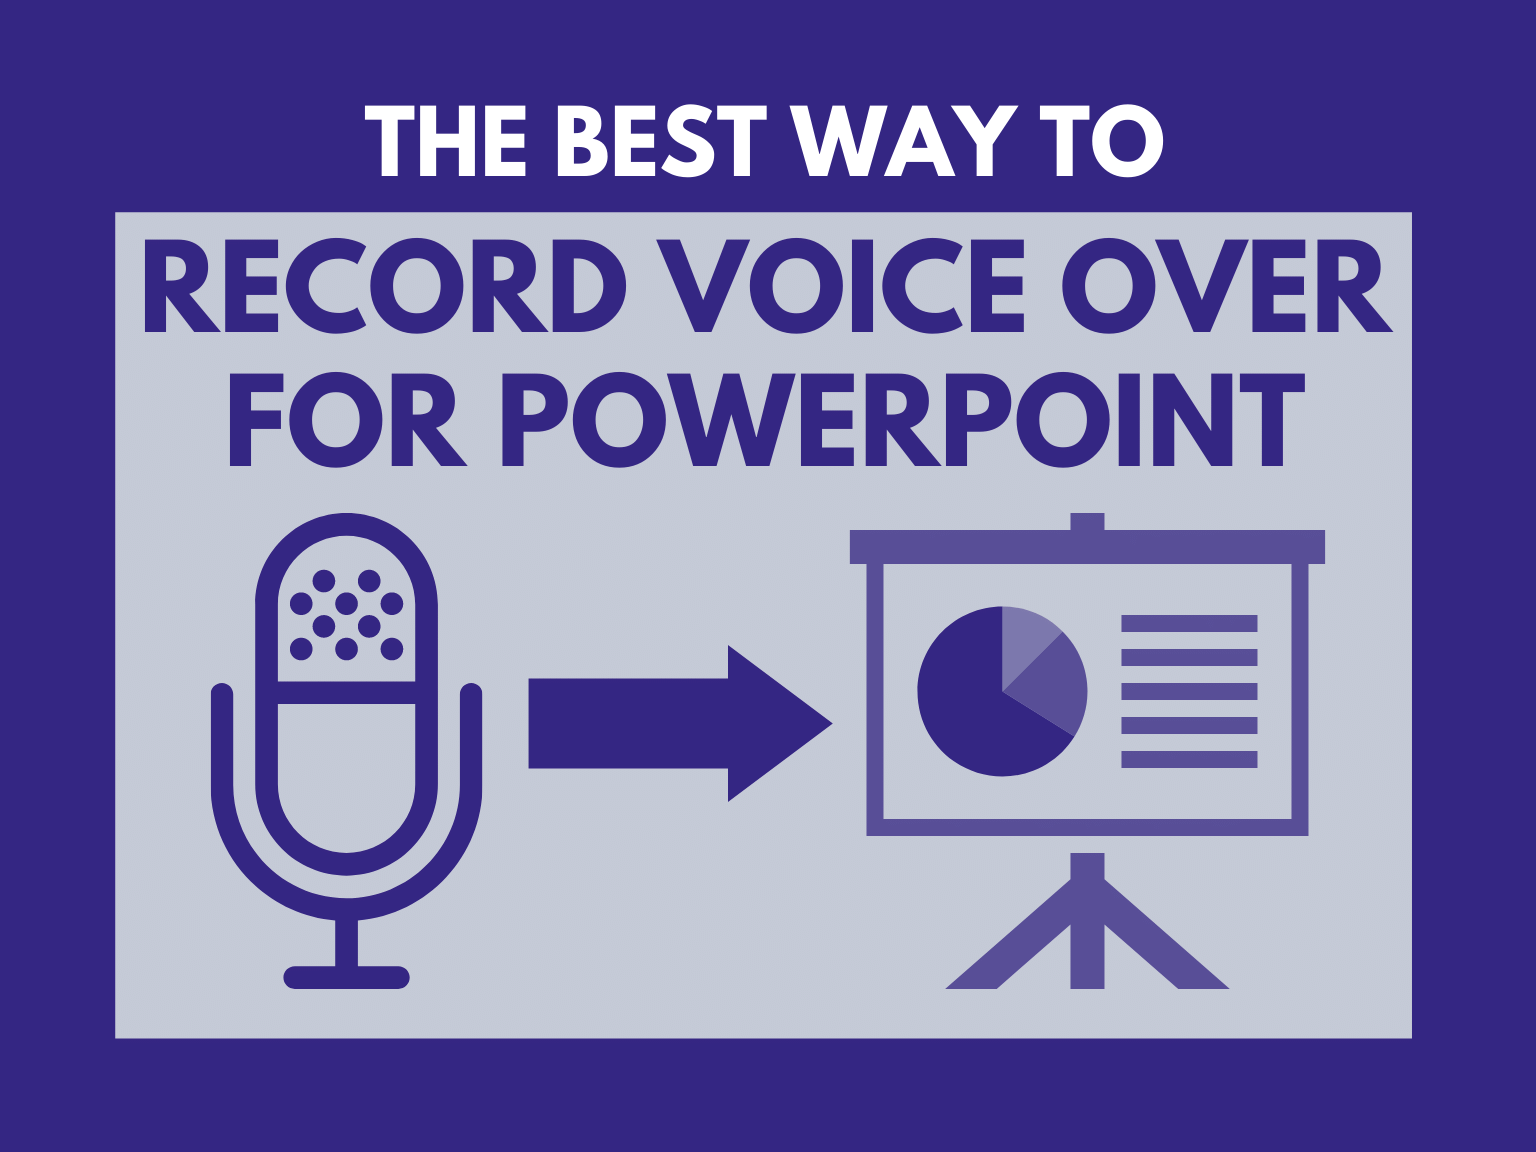 The Best Way to Record Voice Over for PowerPoint